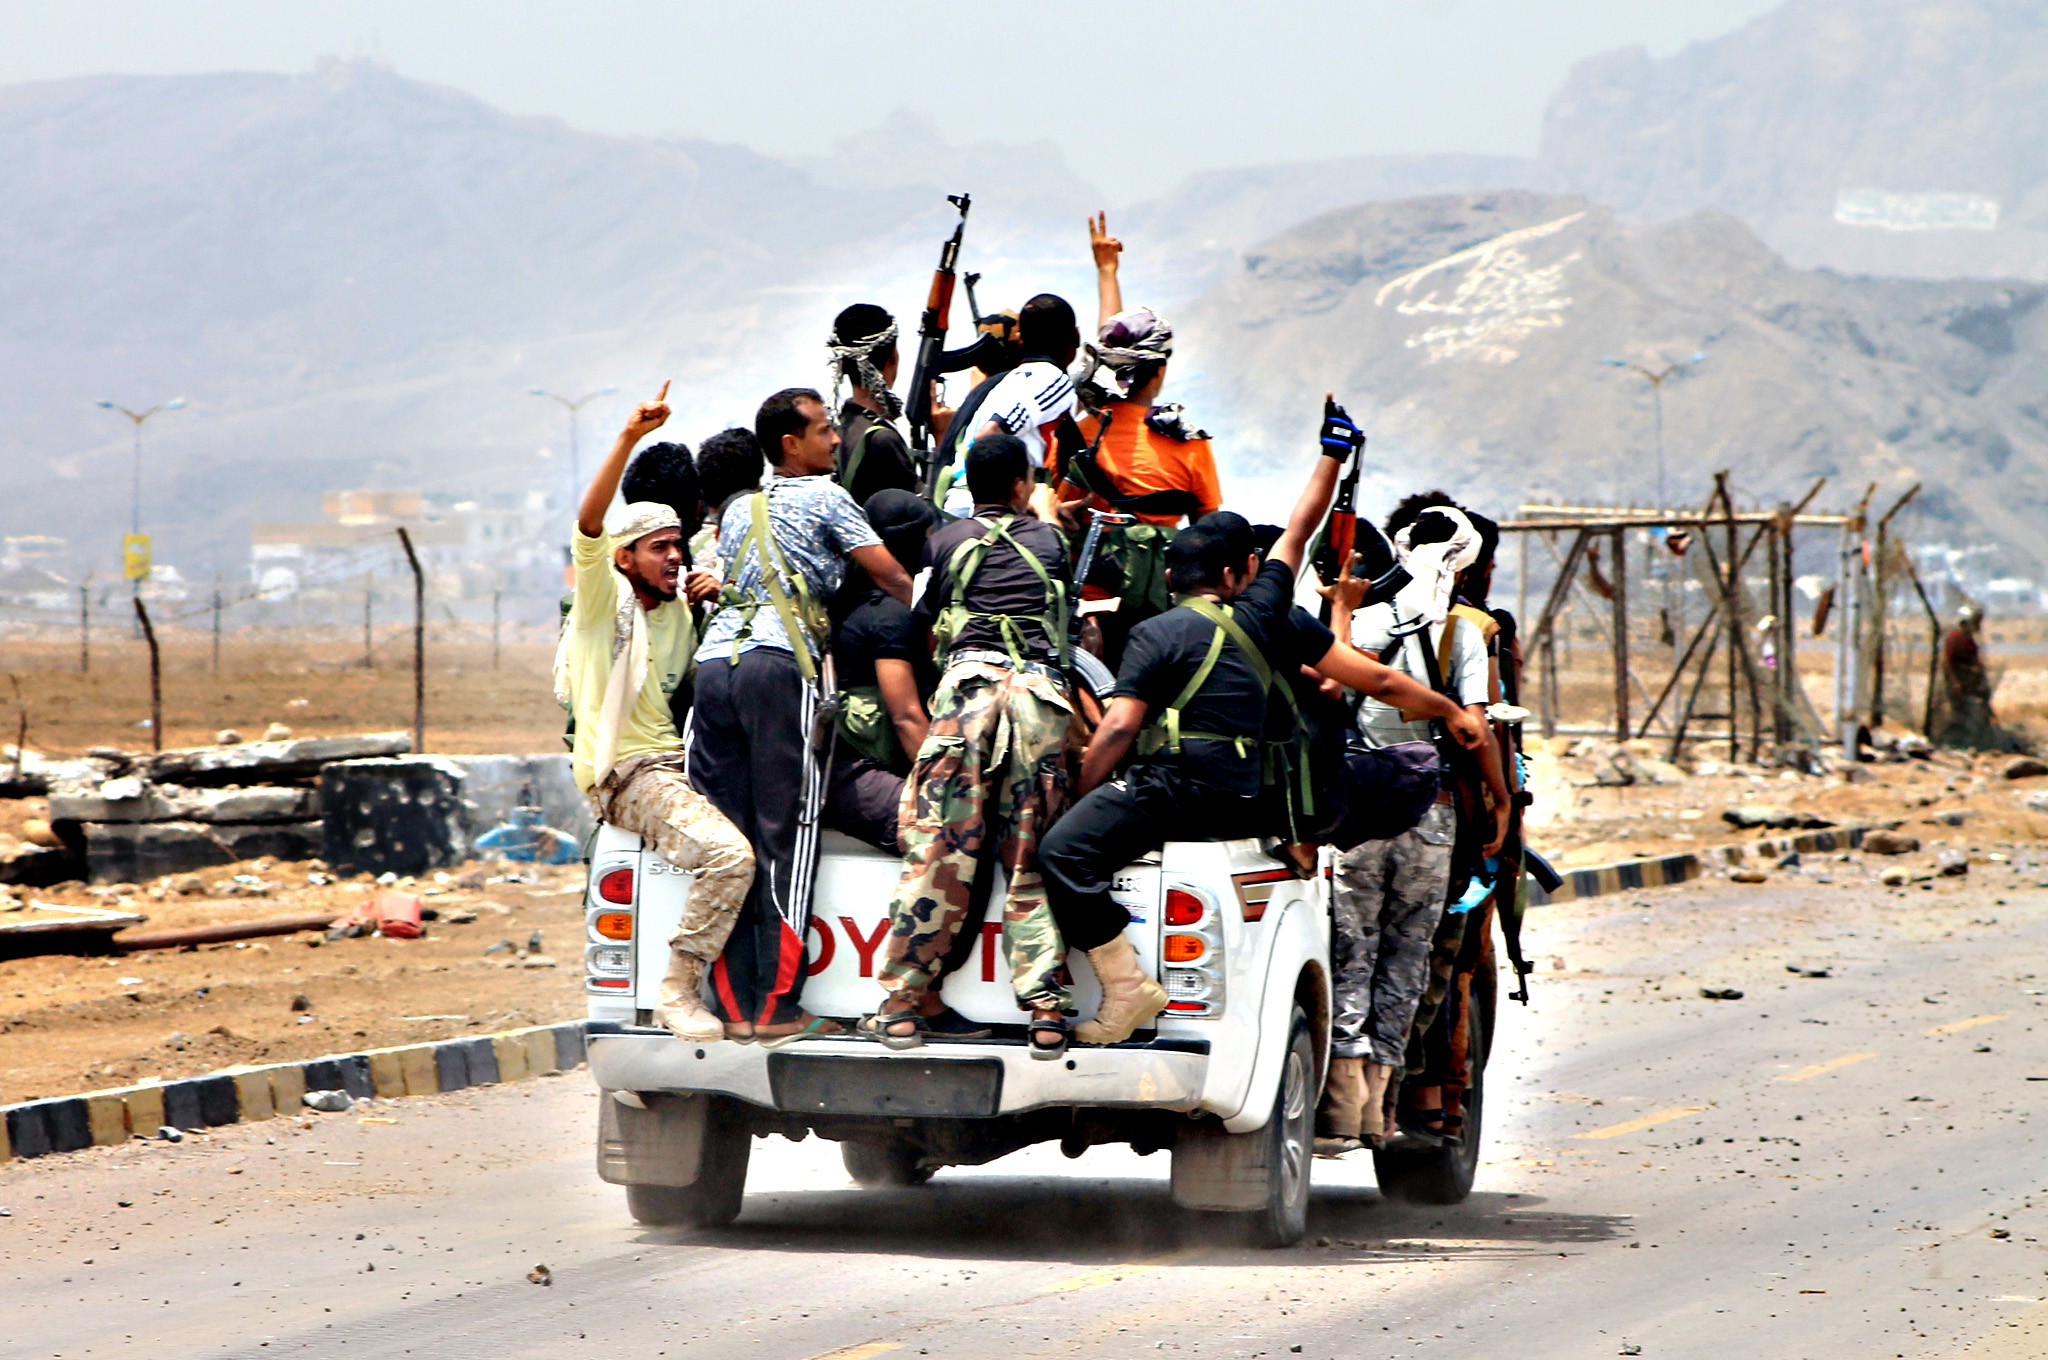 Armed militiamen loyal to Yemen's fugitive President Abderabbo Mansour Hadi drive in a pick-up truck in the Khor Maskar neighbourhood of the southern Yemeni city of Aden on July 14, 2015 near Aden's airport which they recaptured from Shiite Huthi rebels. Loyalists of Yemen's exiled president recaptured the airport in second city sealing a four-month battle with Iran-backed rebels with Saudi-led air and naval support, military sources said